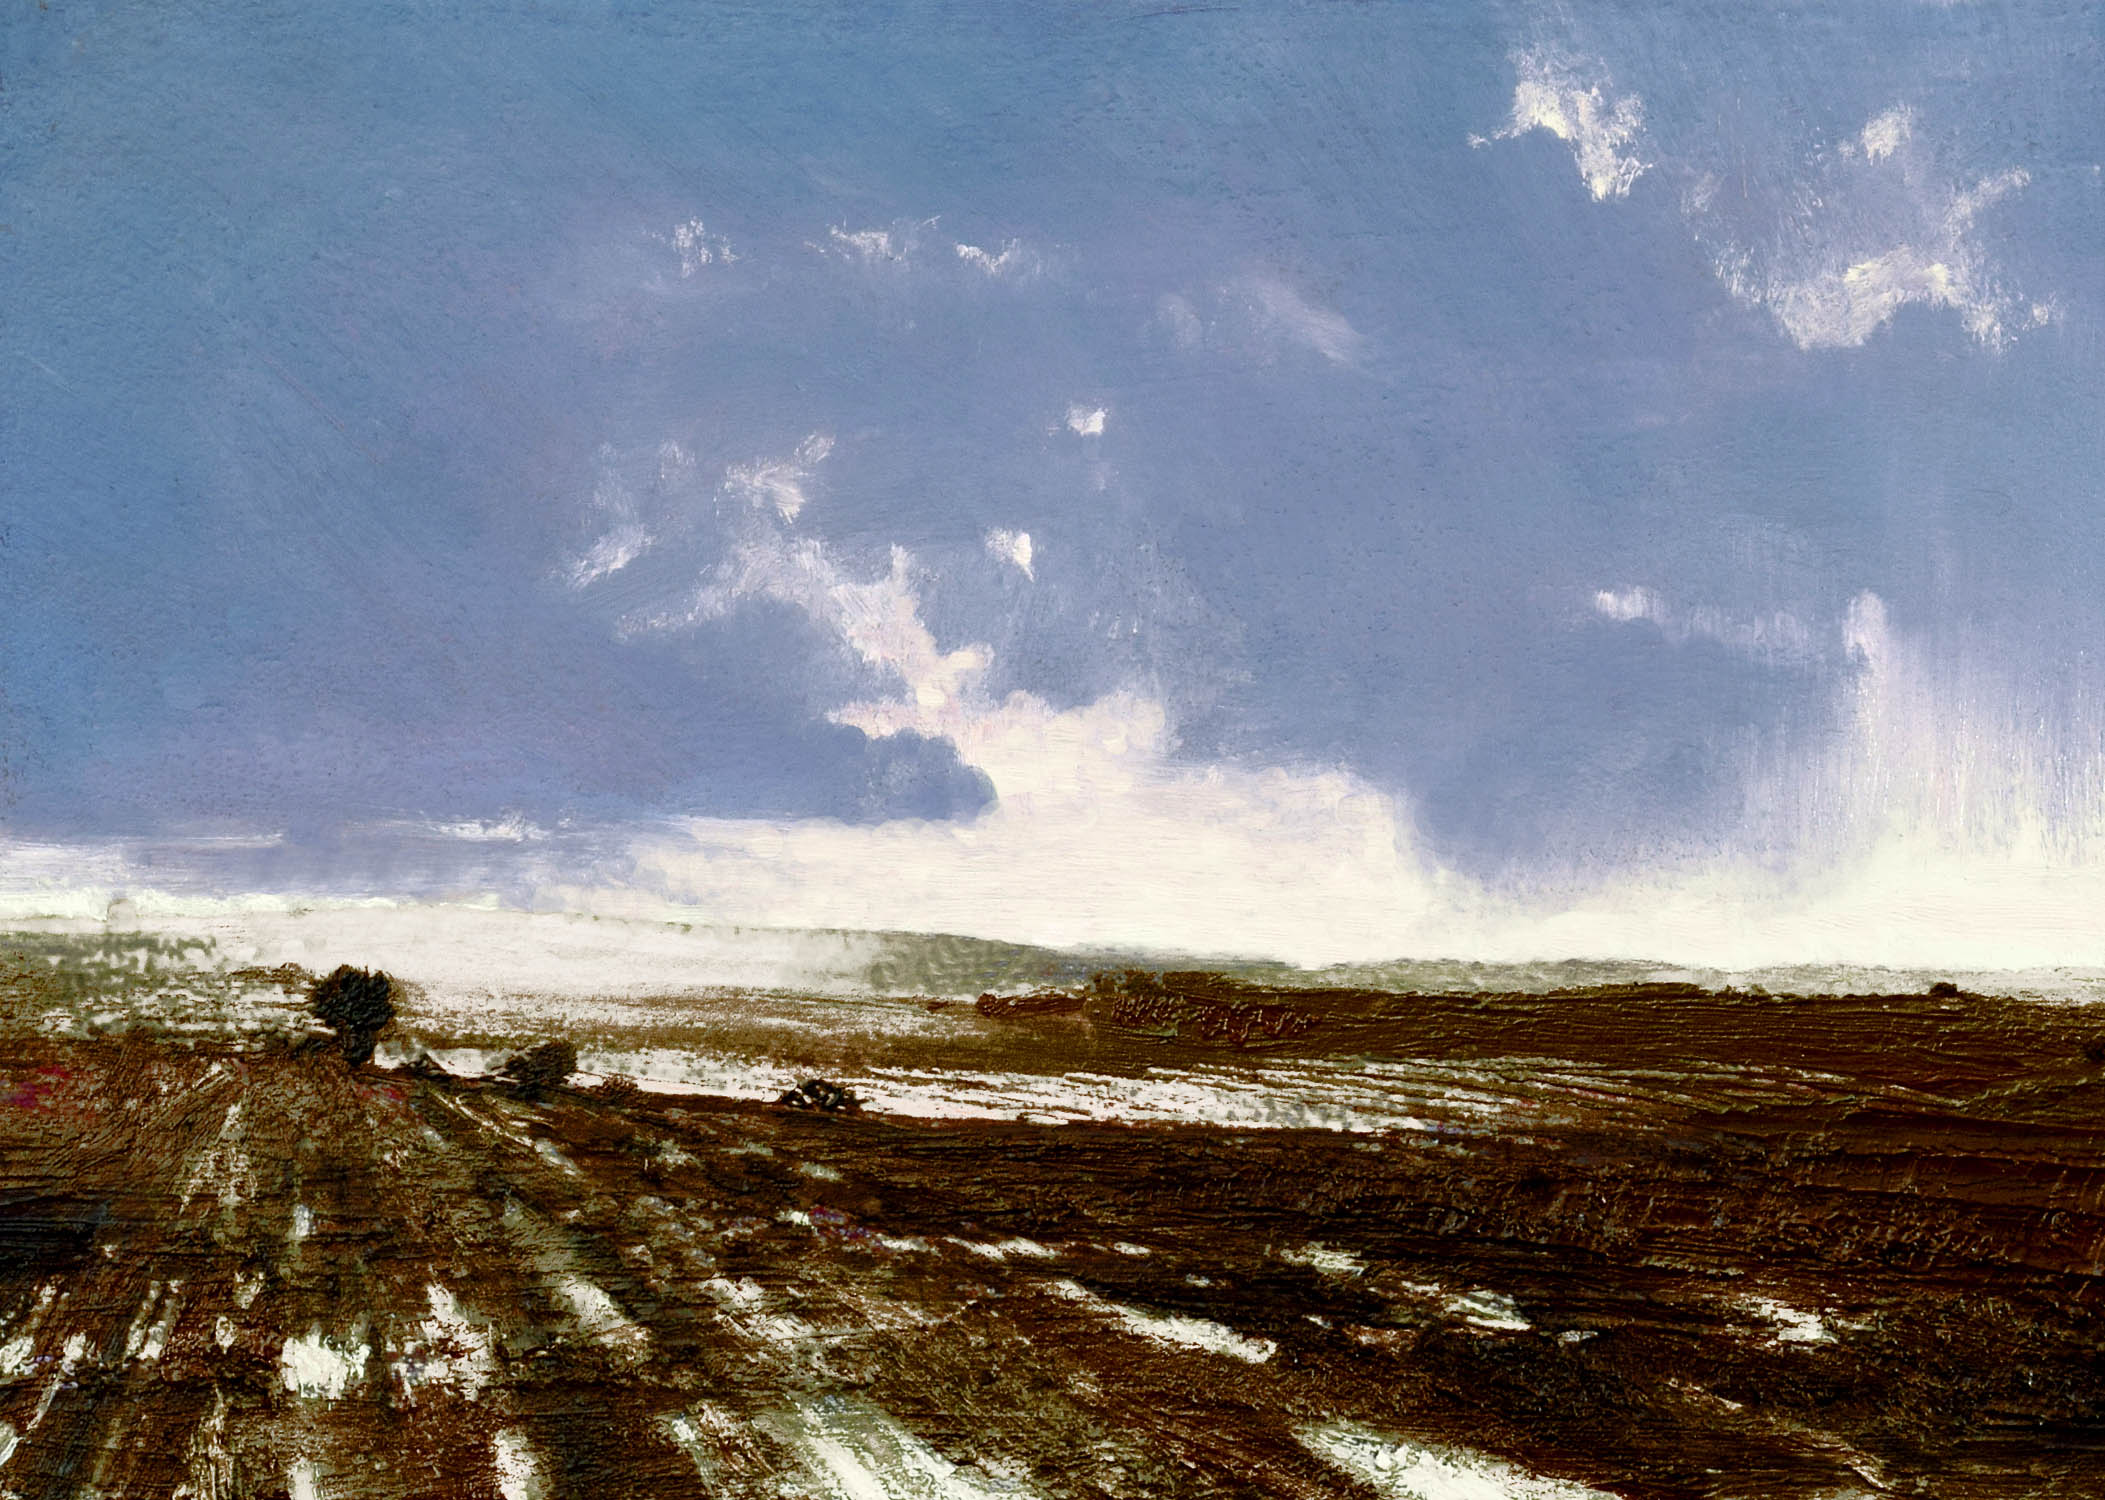 The Fallow Field III, John O'Grady| Frost on frozen fields